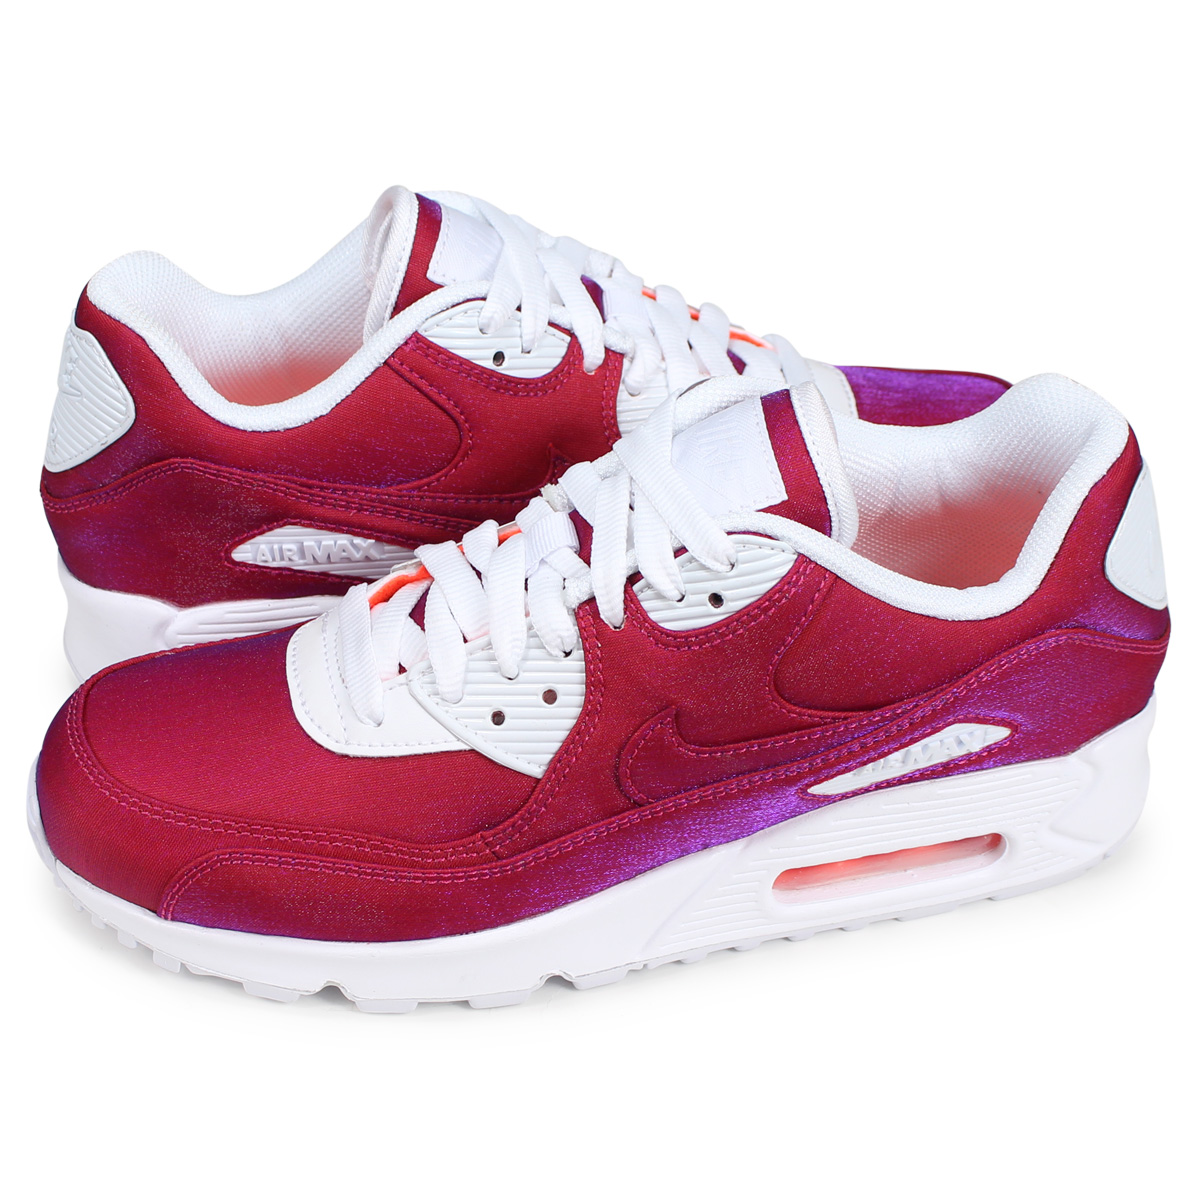 Nike NIKE Air Max 90 sneakers Lady's WMNS AIR MAX 90 SE red 881,105 800